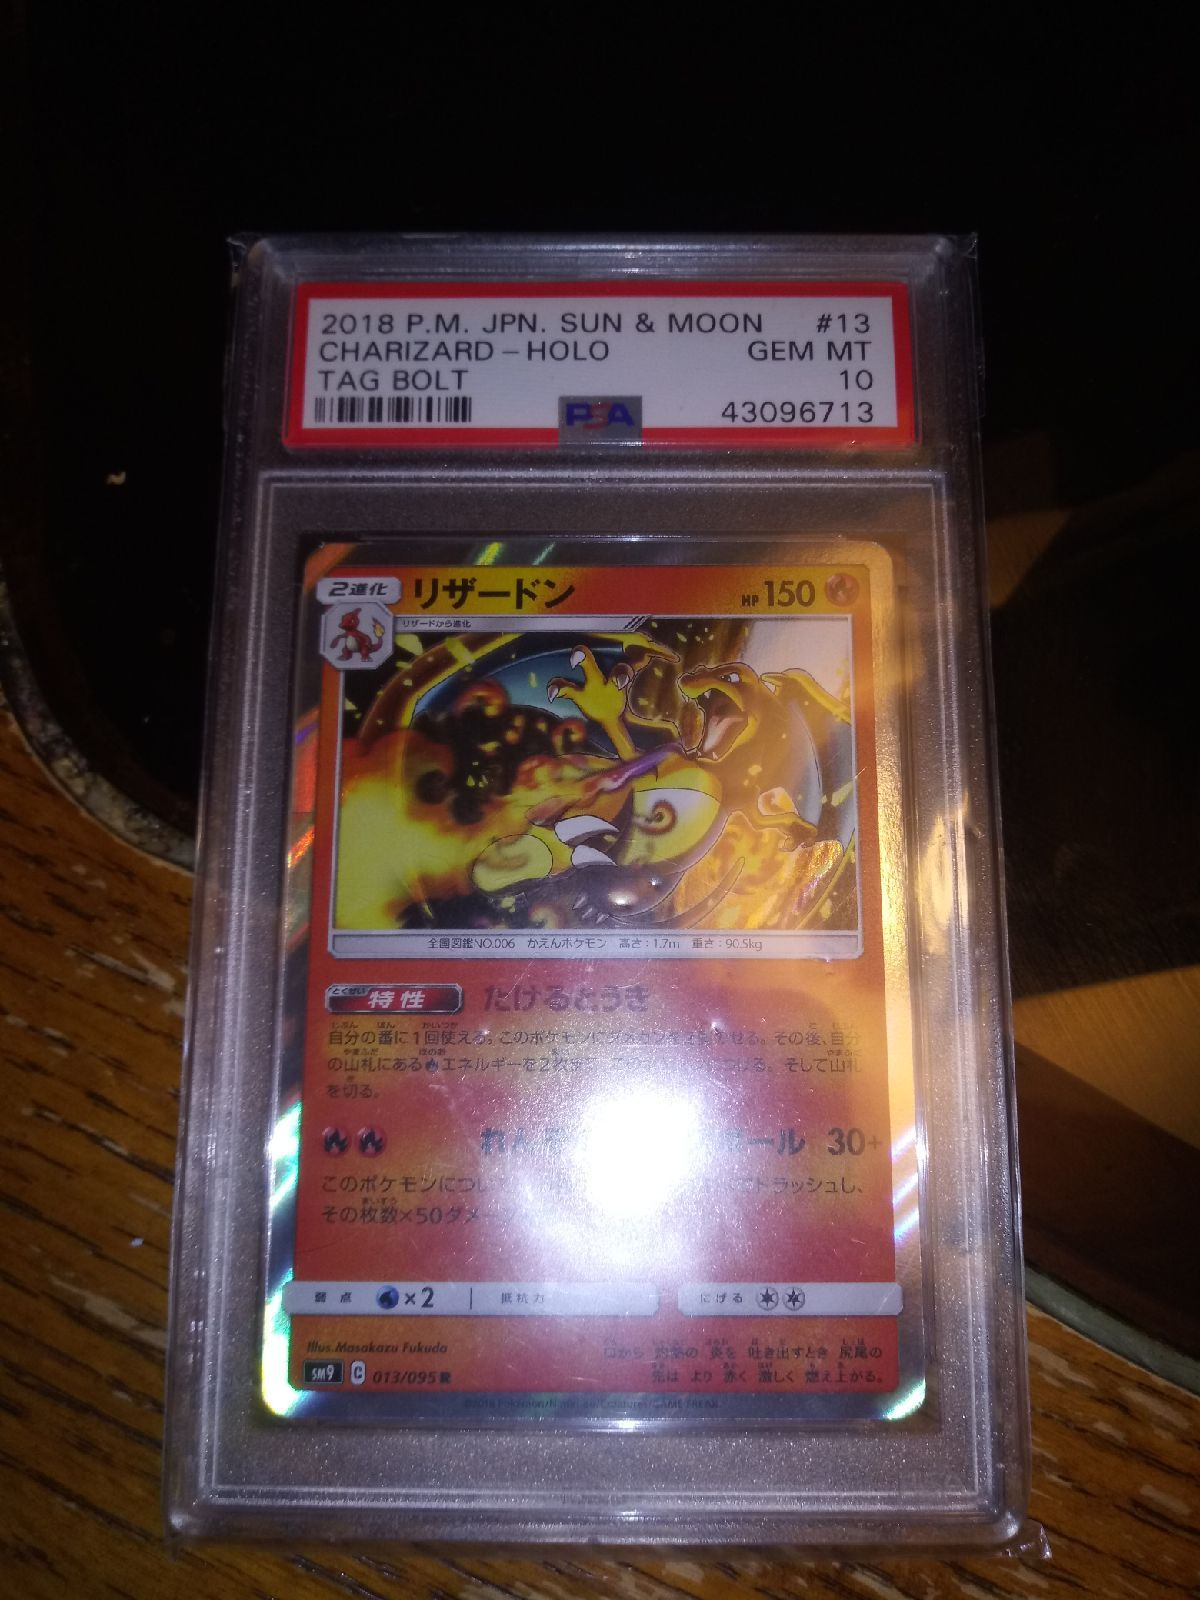 Psa 10 and good for anyone 10 things, Book cover, Pokemon